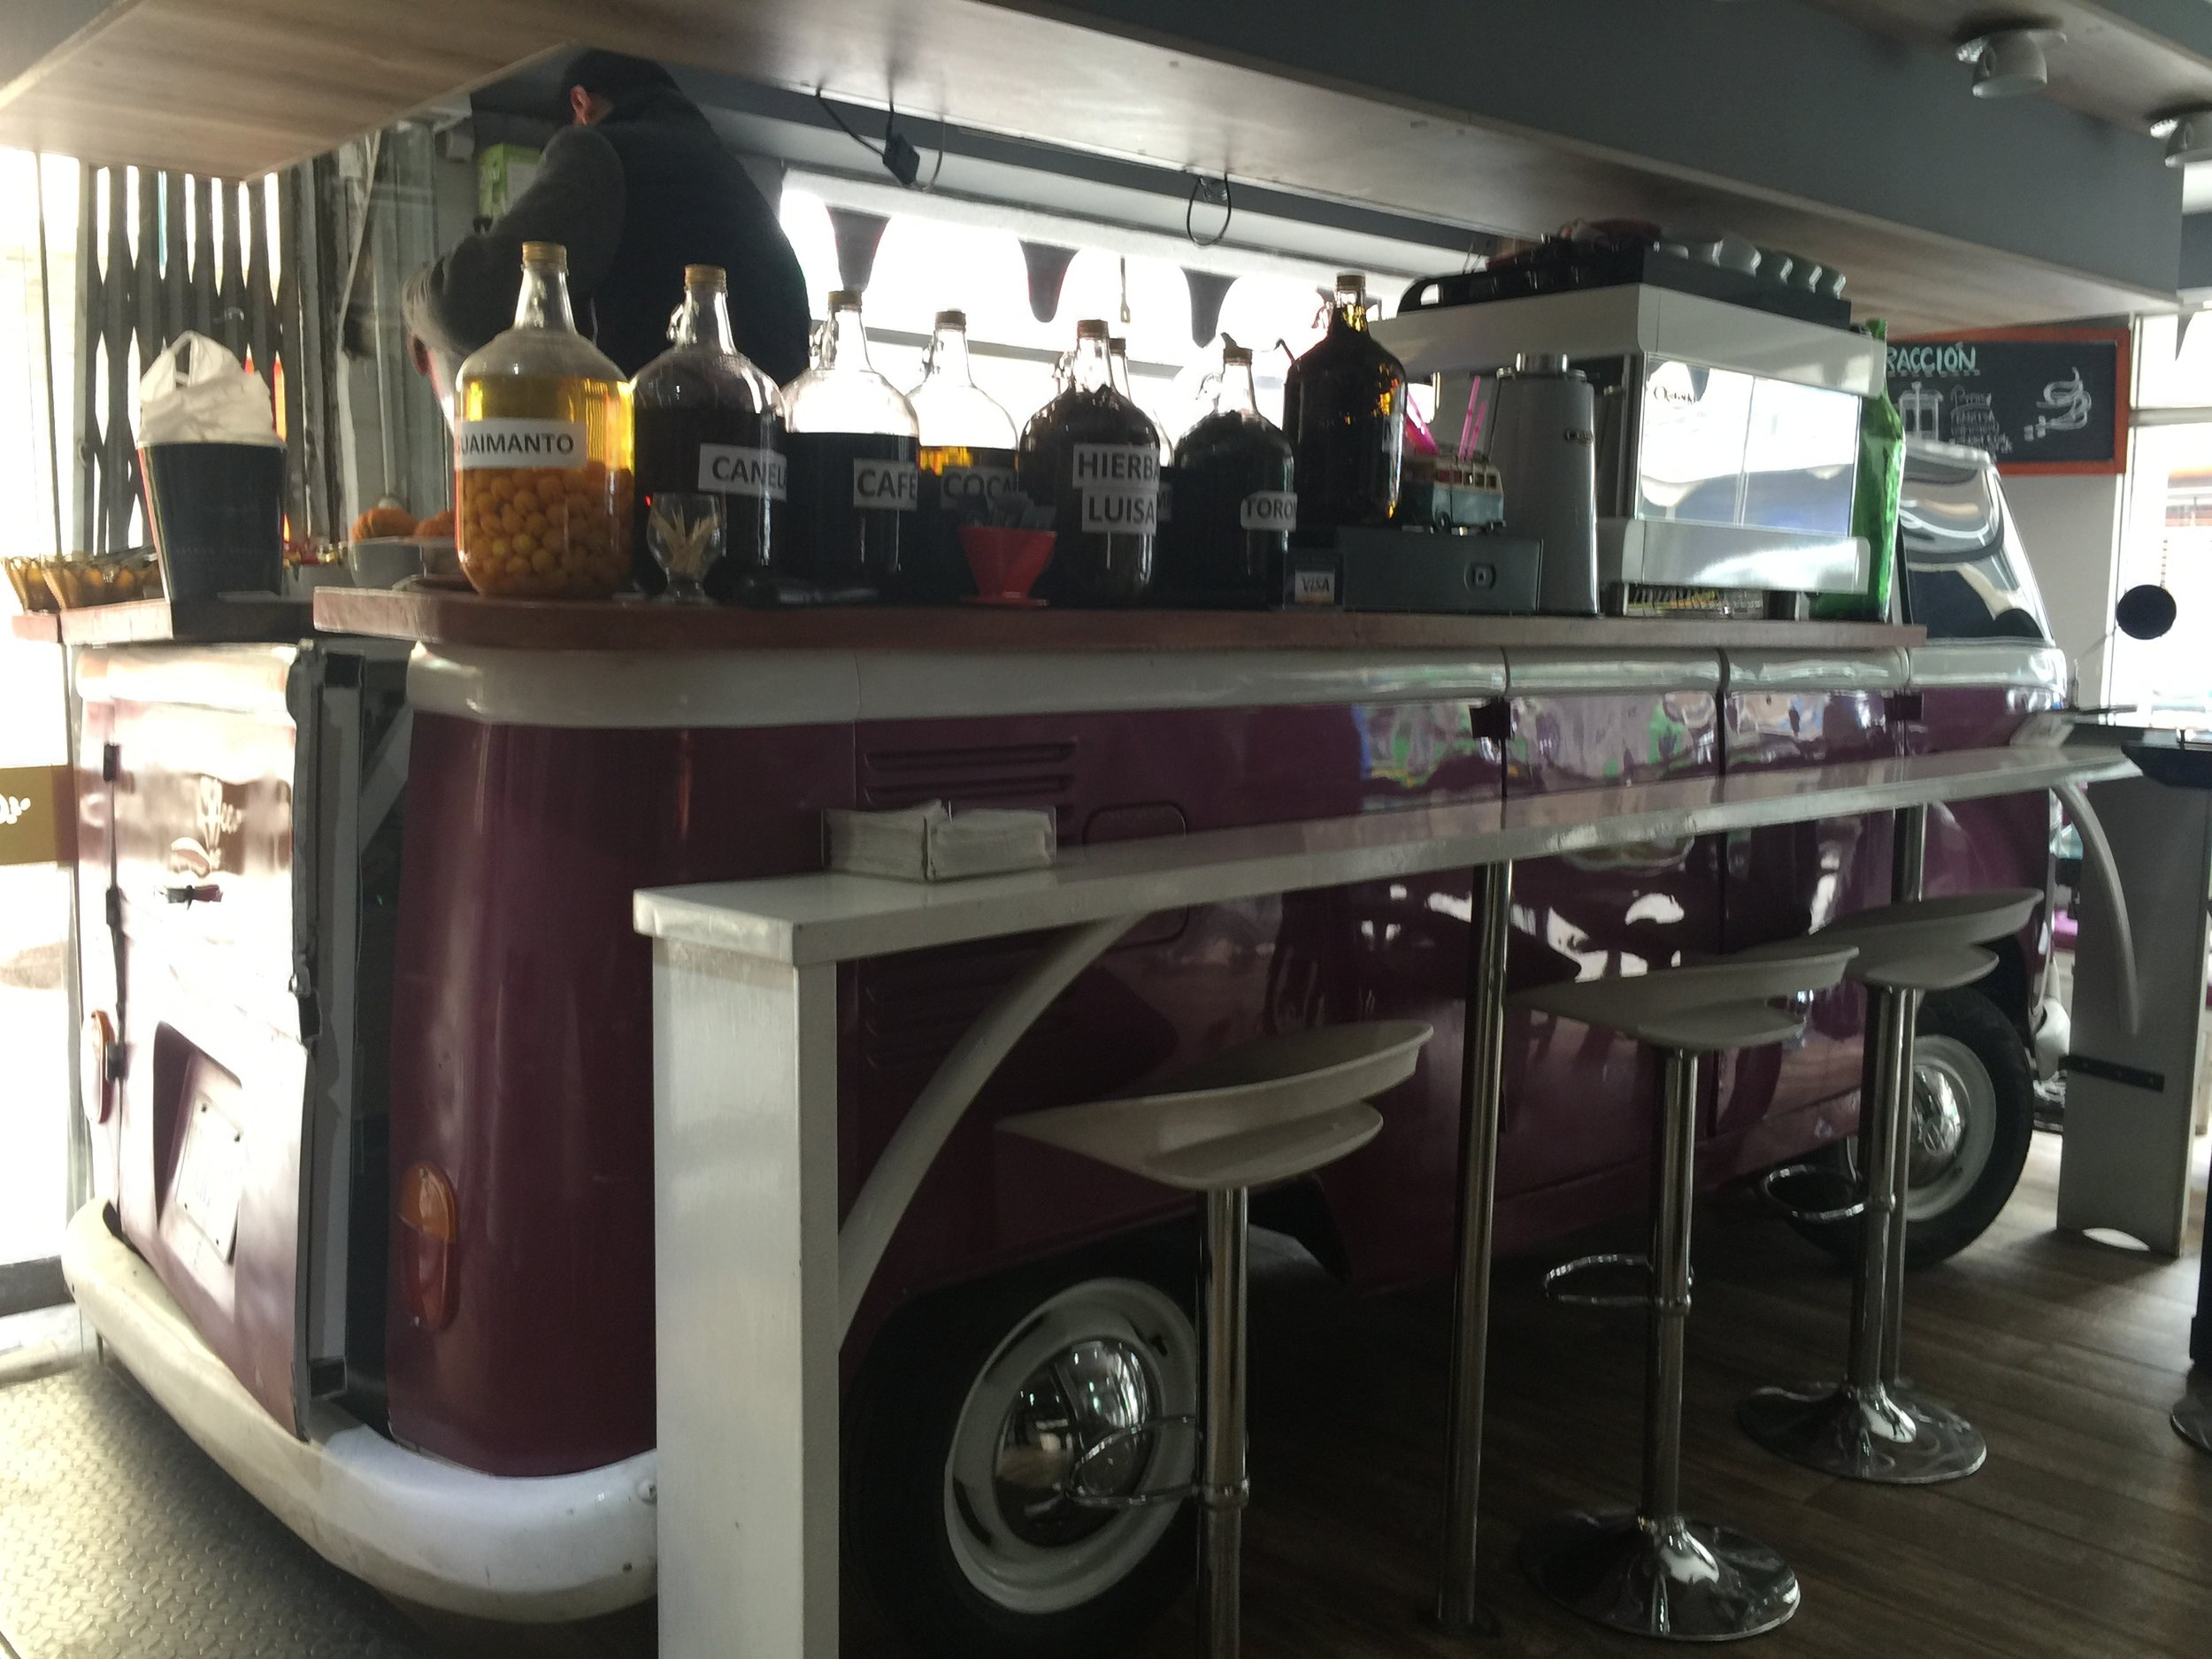 Yes, this coffee bar is a real Volkswagen bus.